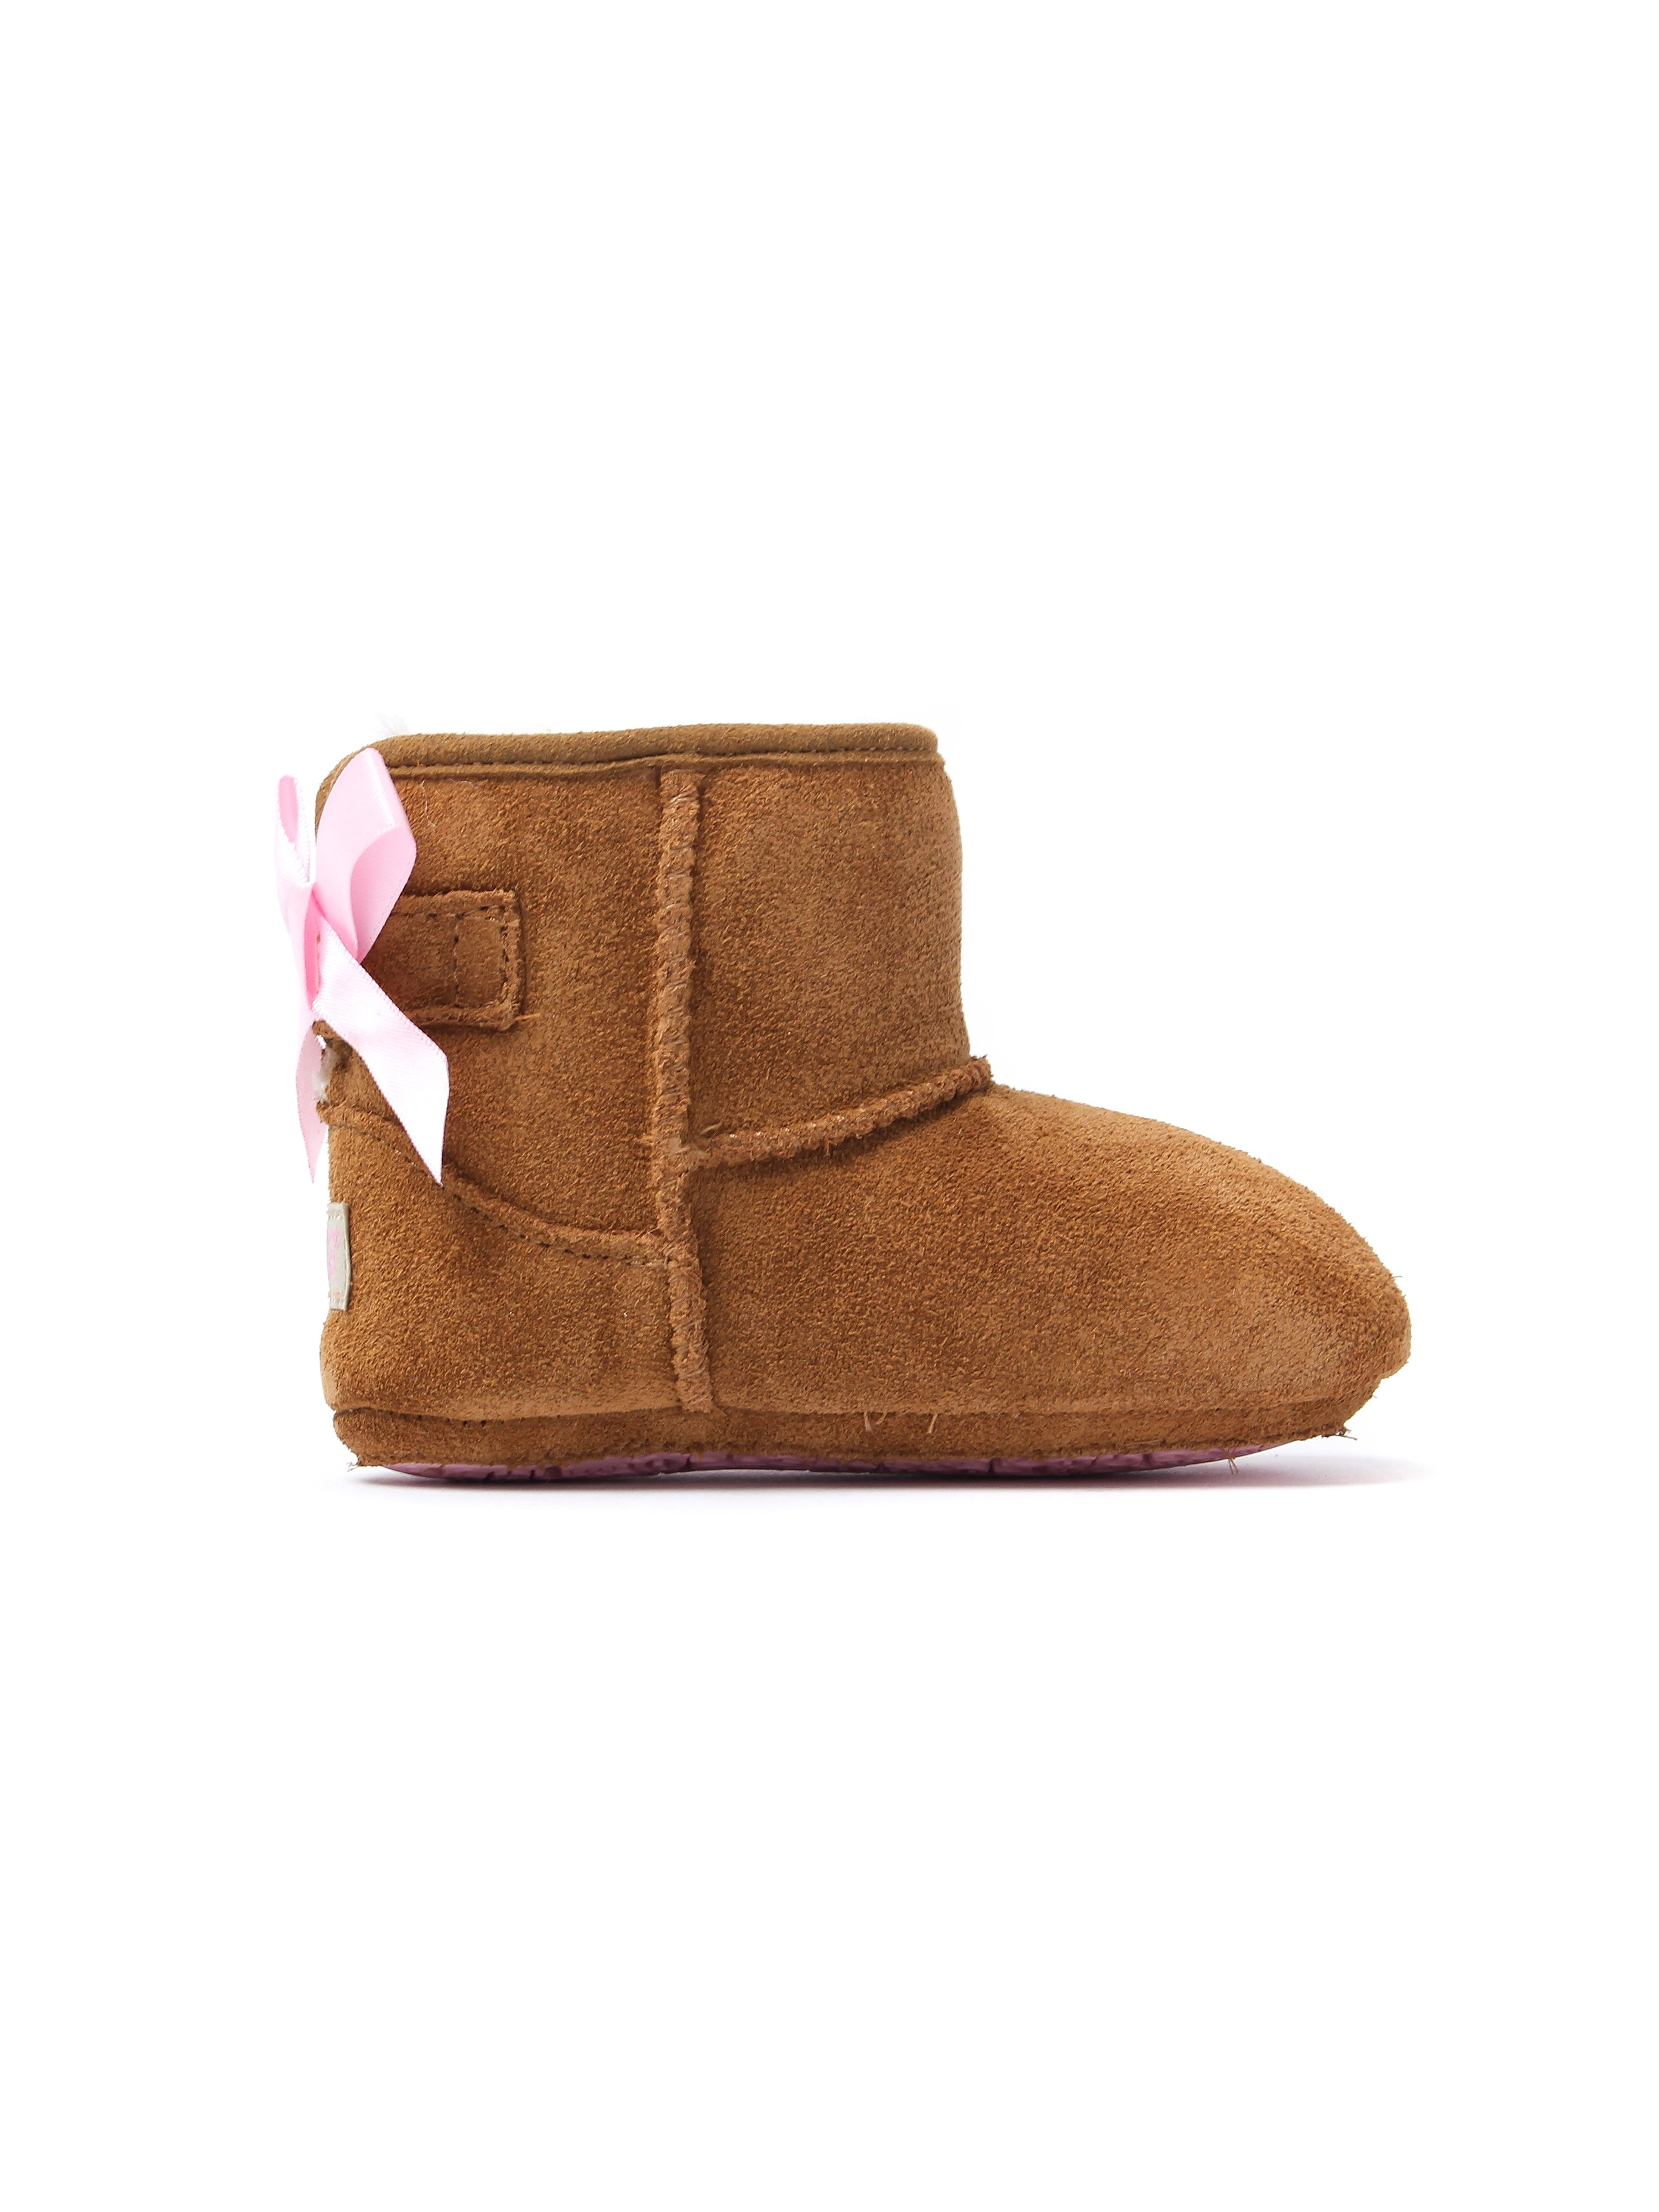 UGG Infant Iche Jesse Bow II Boots - Chestnut Suede